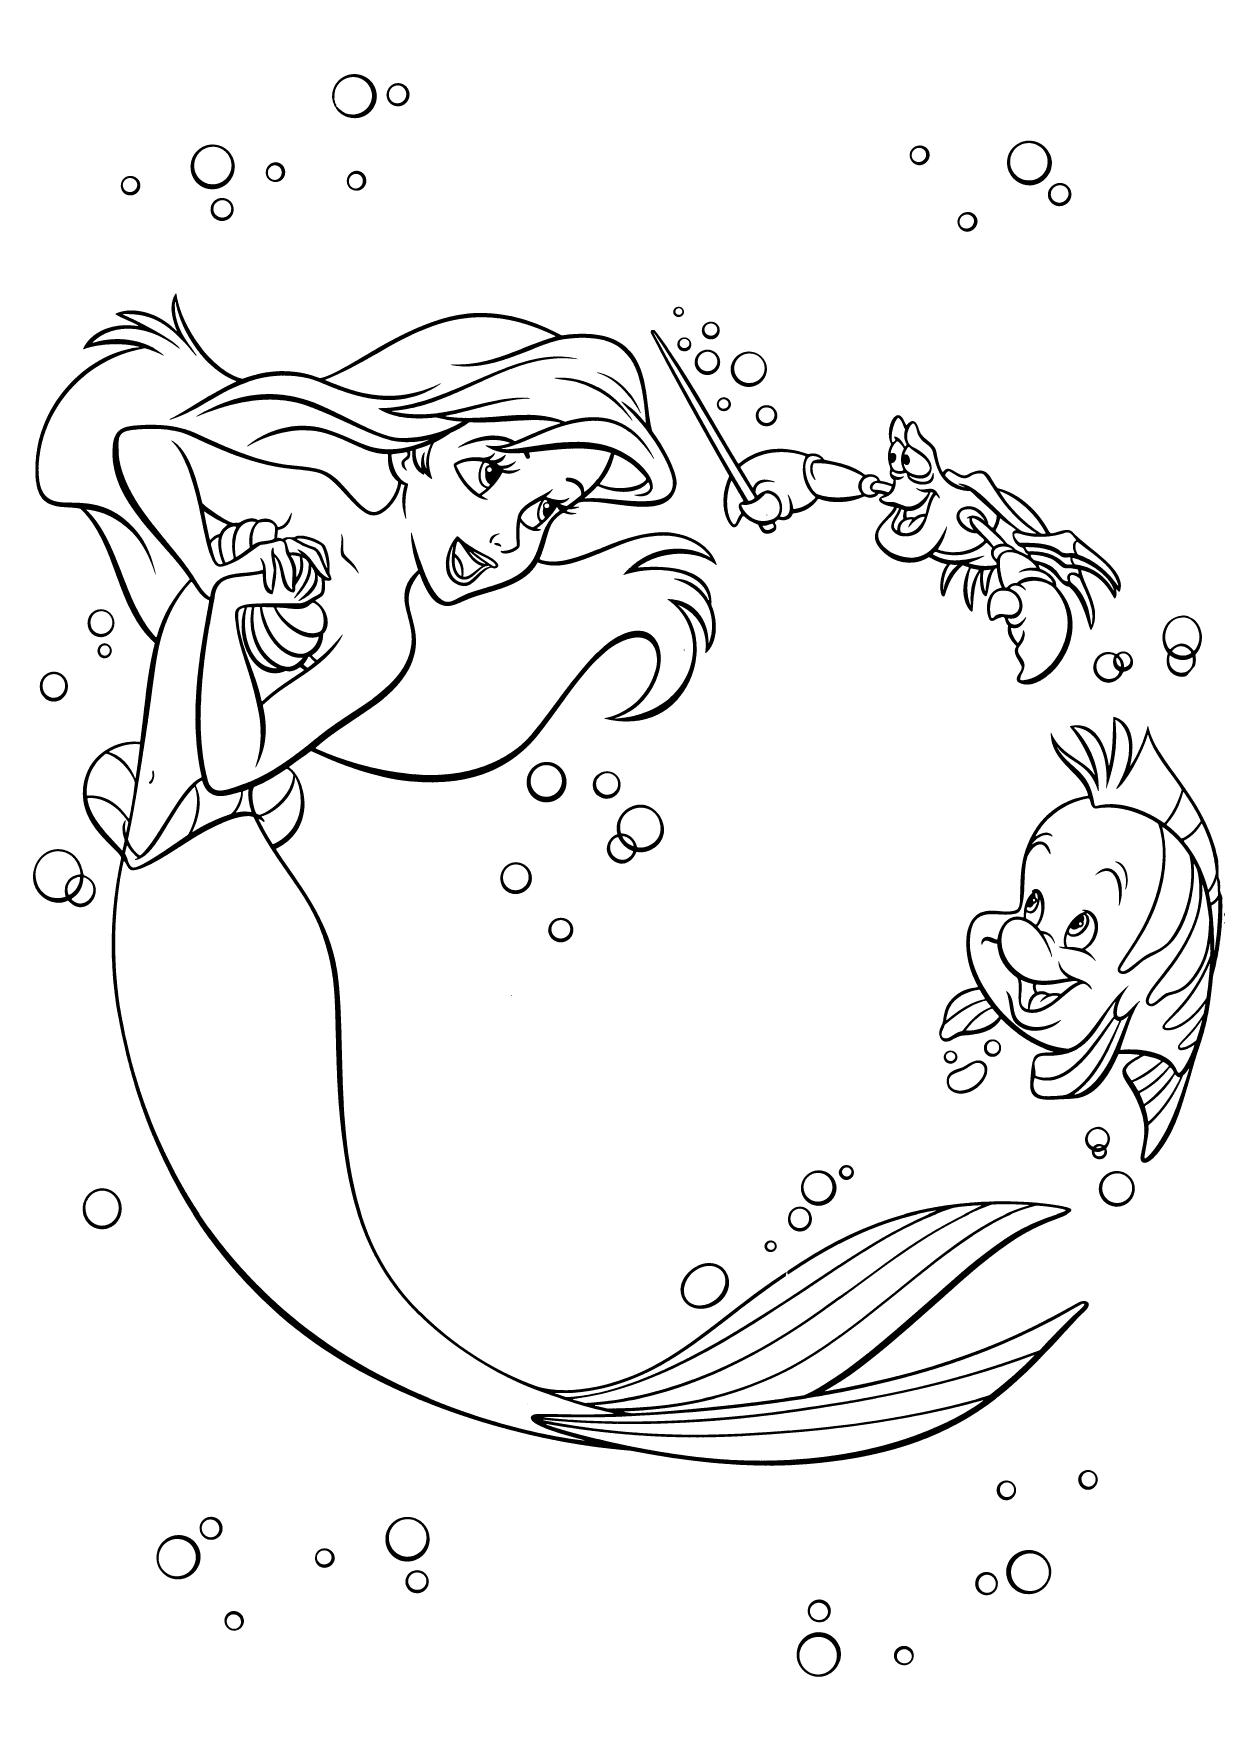 Coloring Book For Kids Pdf Free Download